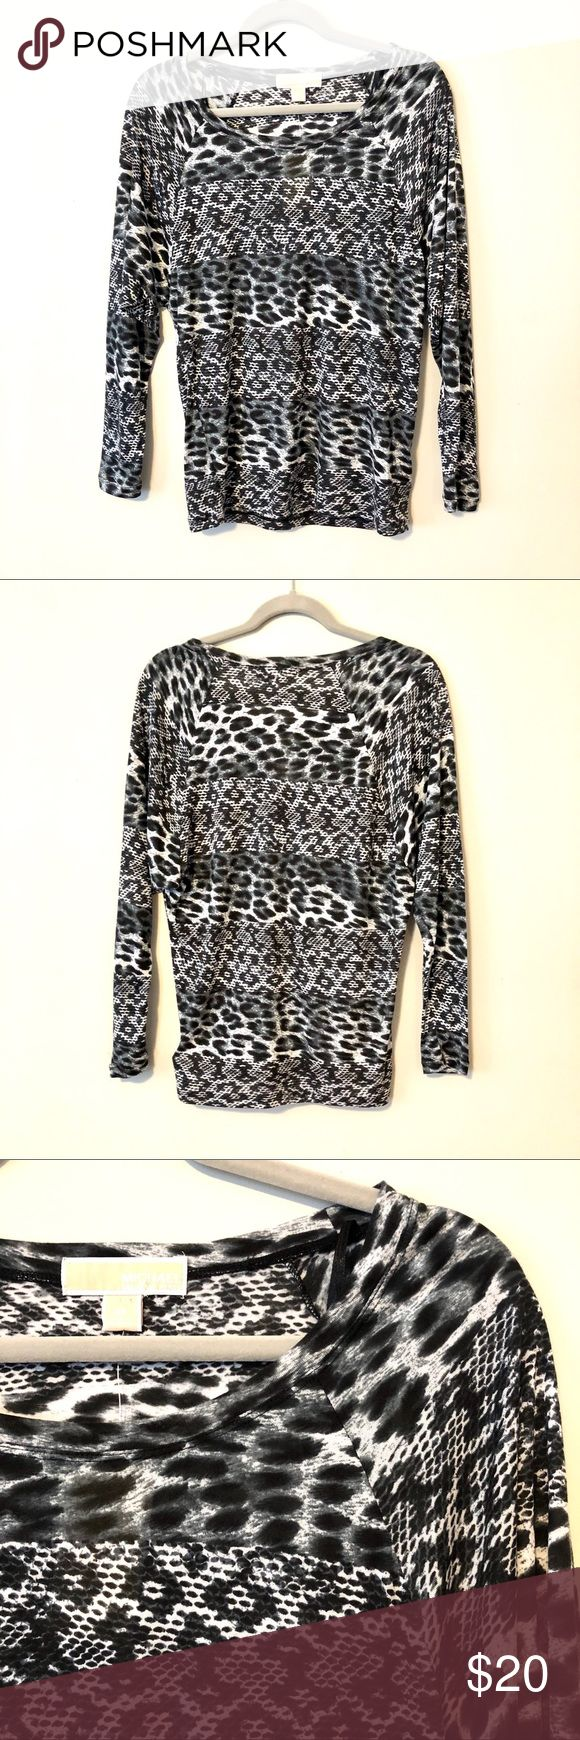 🆕Michael Kors Top Fun animal print top by Michael Kors. Complimentary colors of black, grey & white in a lightweight rayon fabric for a comfortable feel. NWT Michael Kors Tops Blouses